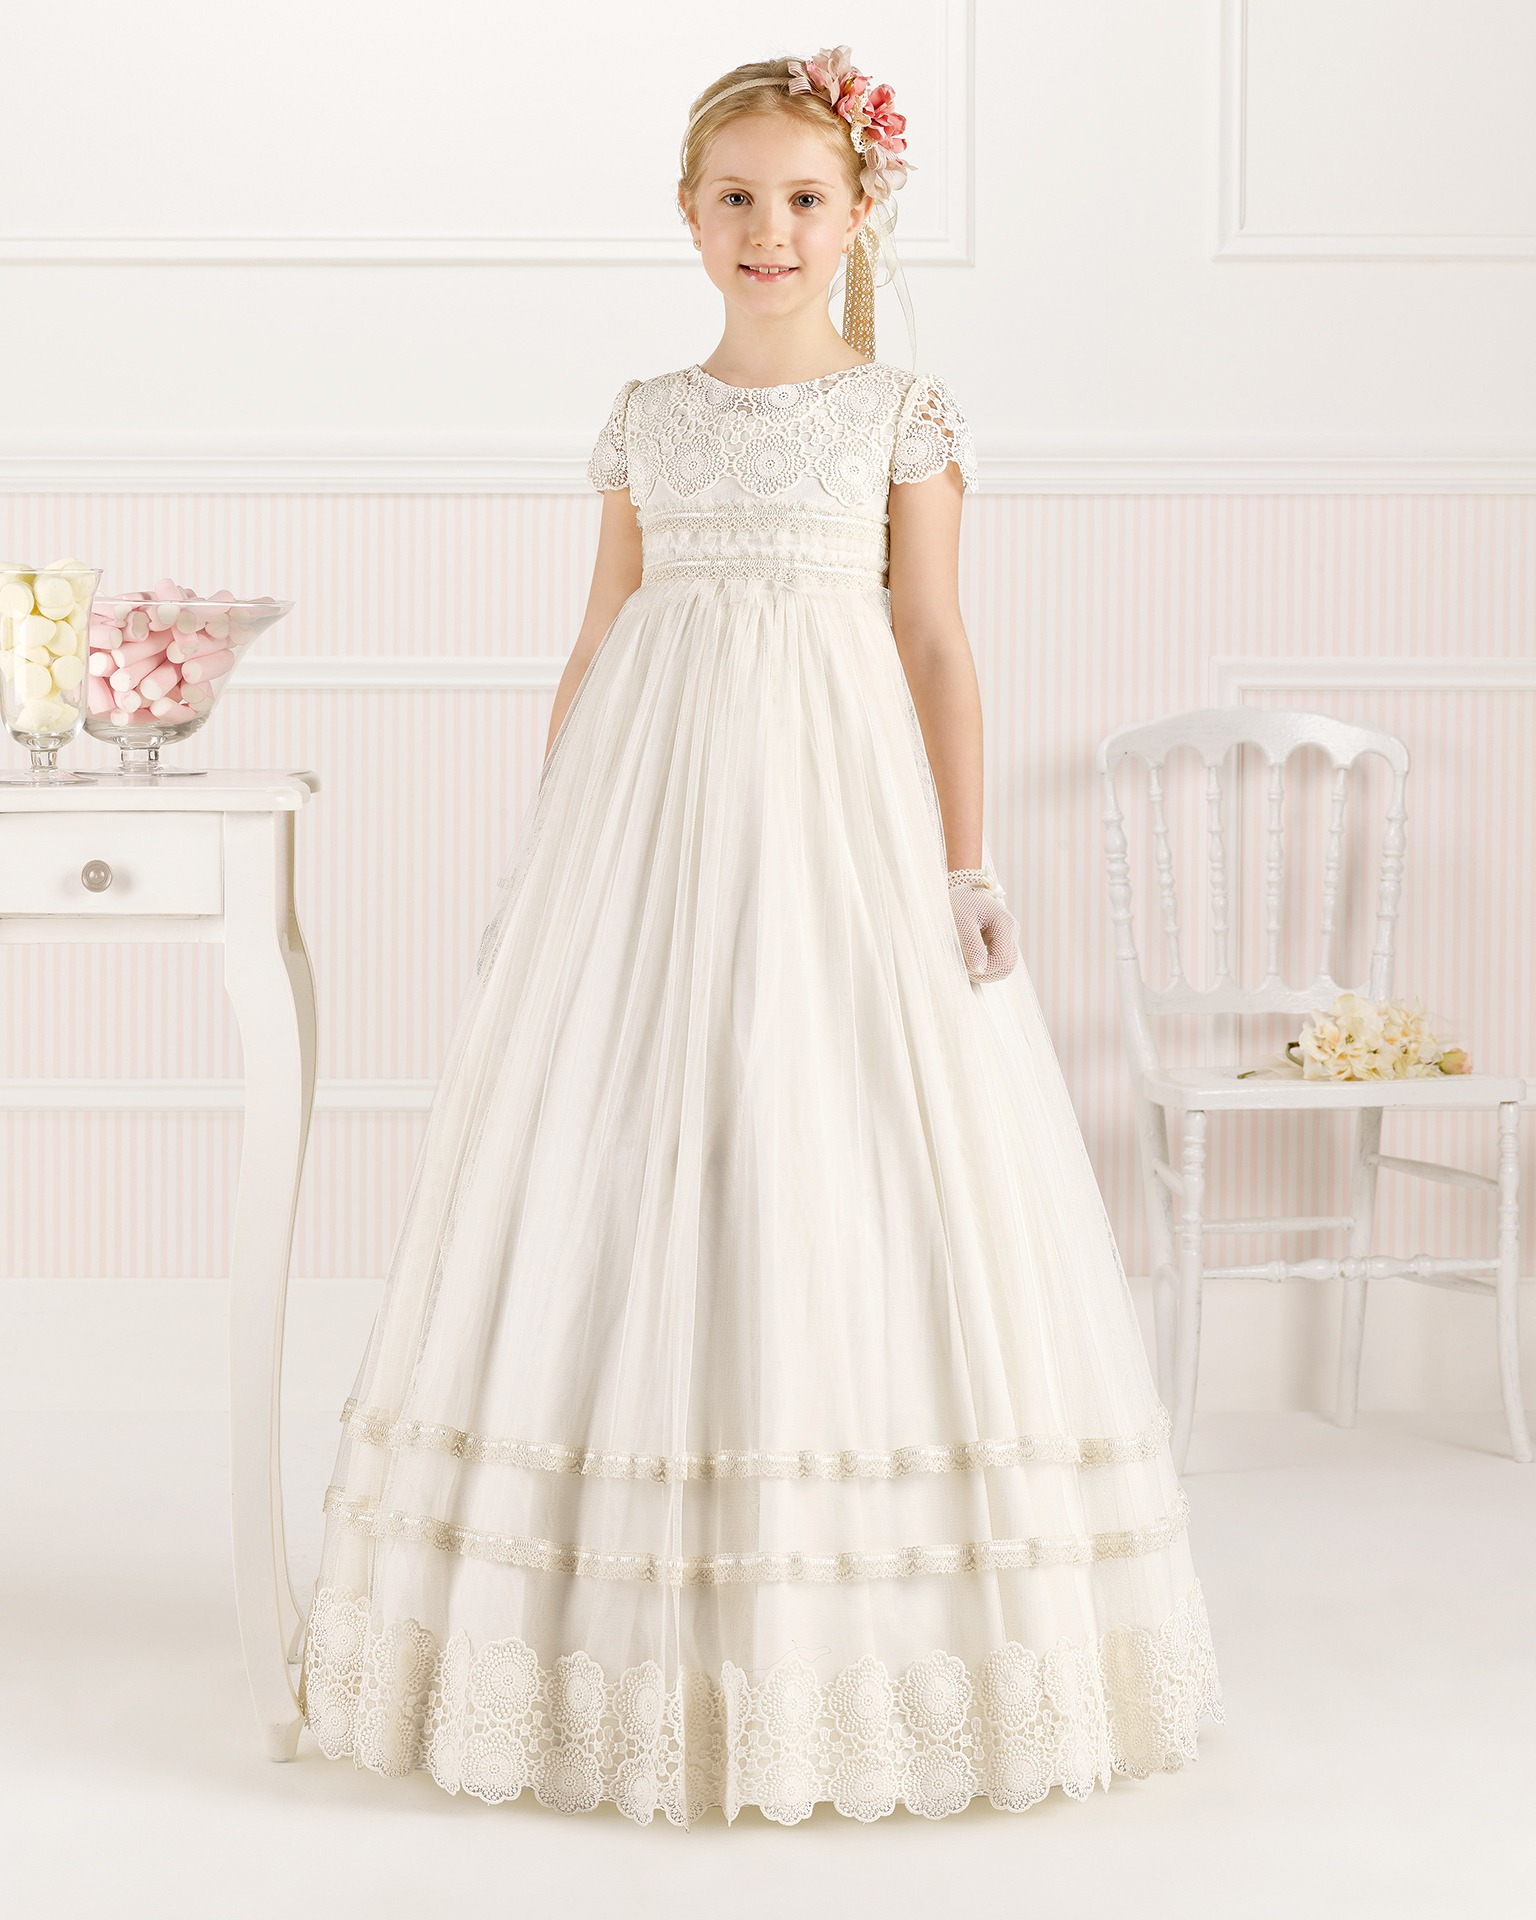 9O103 ballgown-style First Communion dress